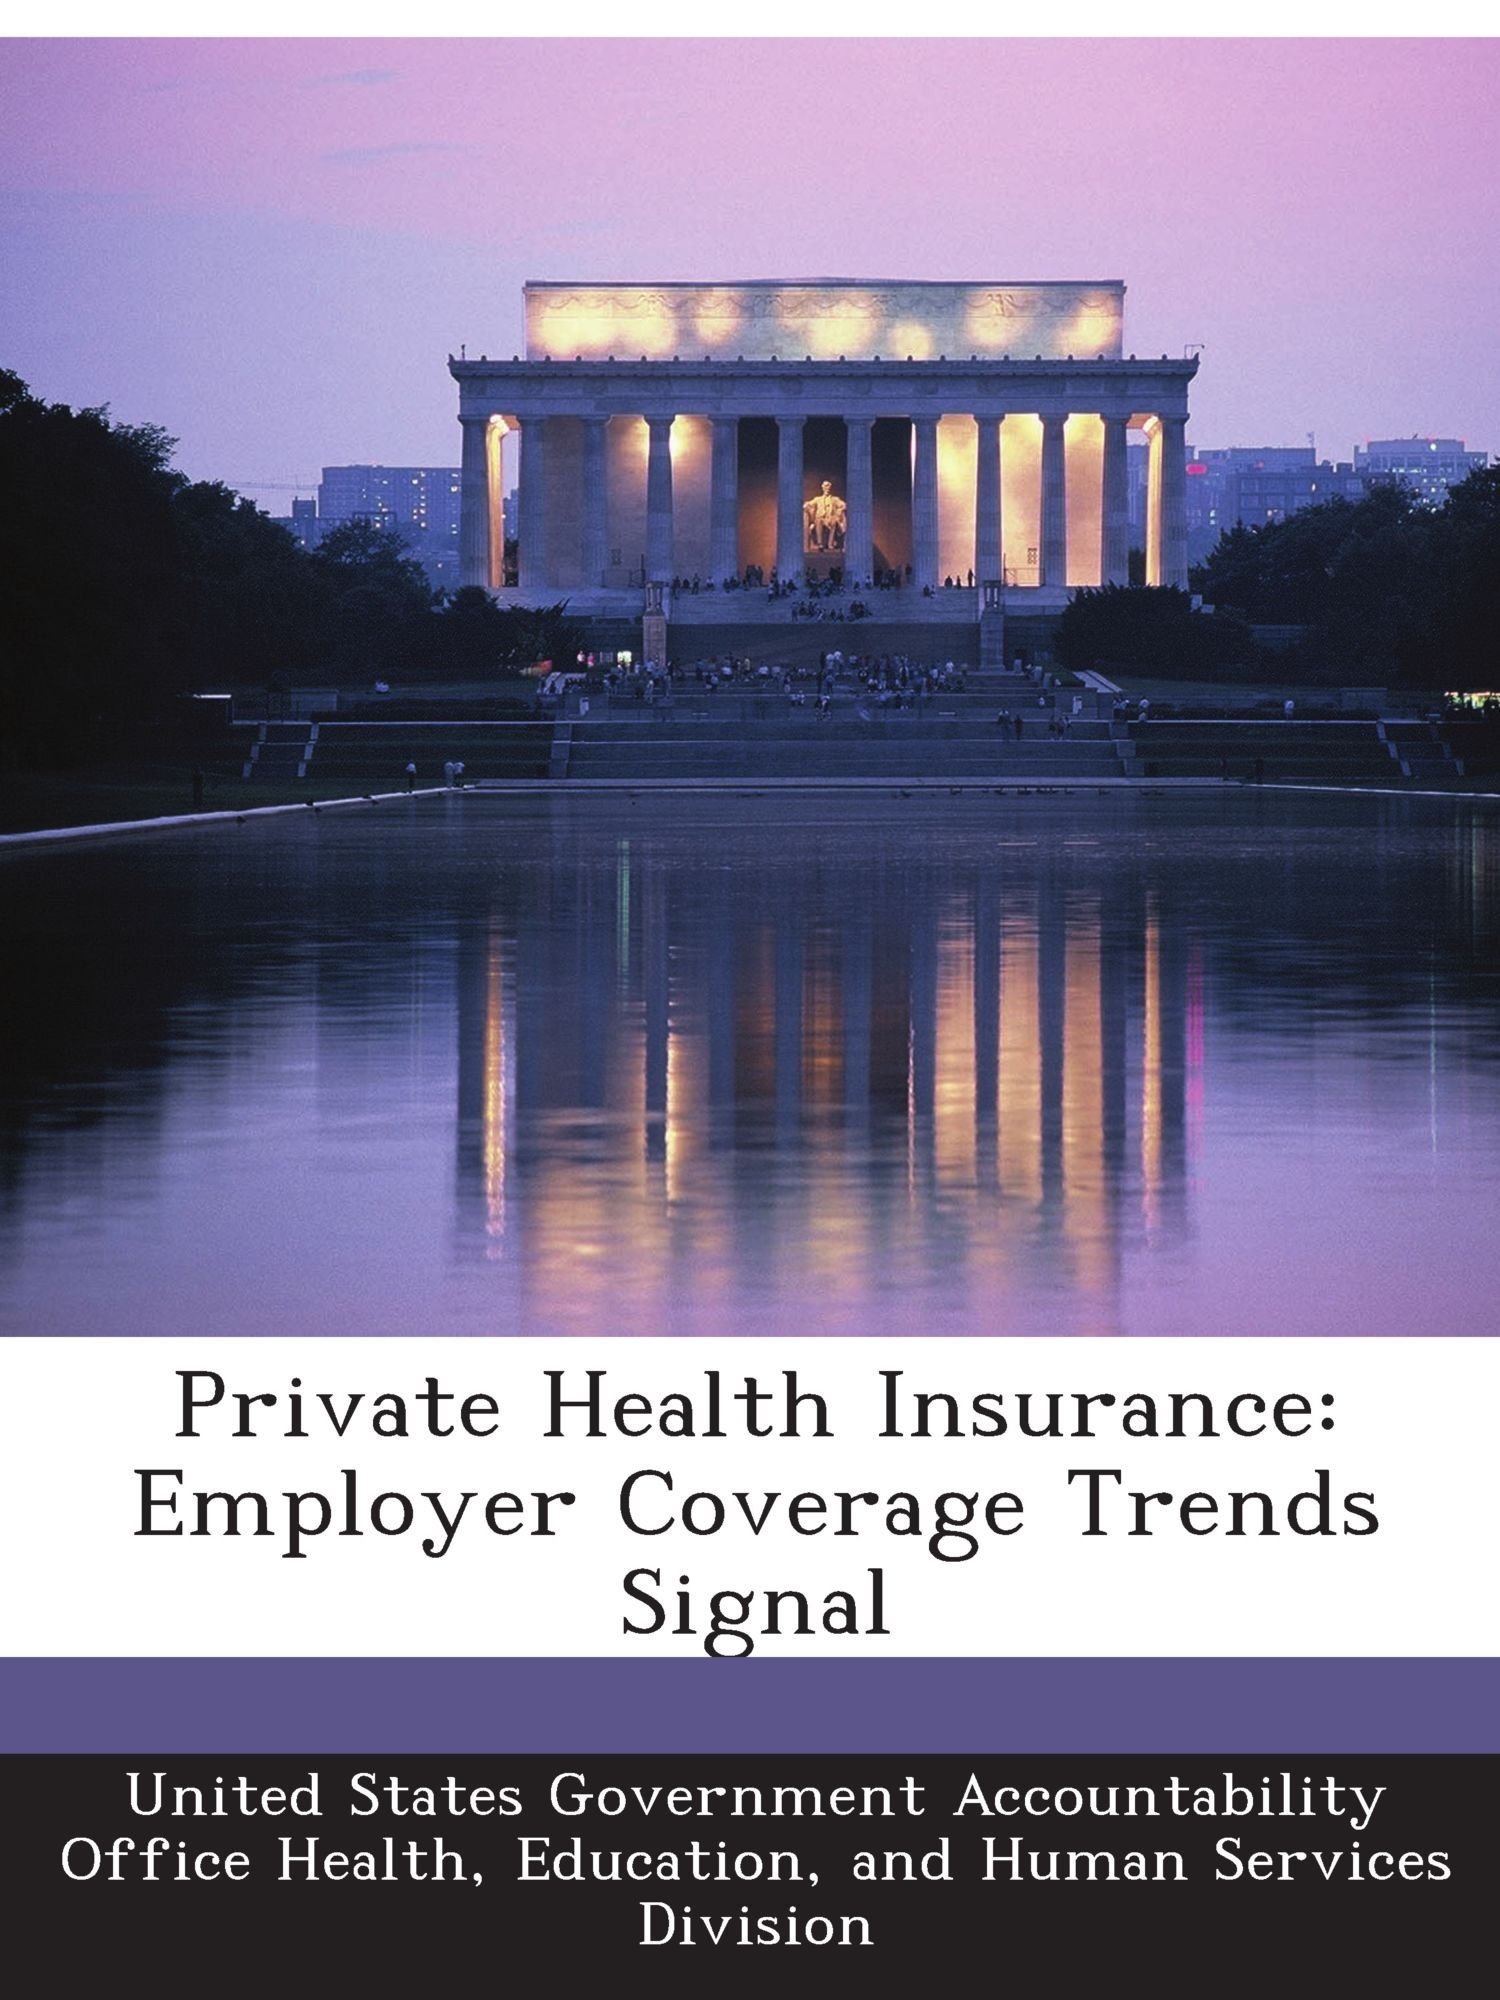 Private Health Insurance: Employer Coverage Trends Signal